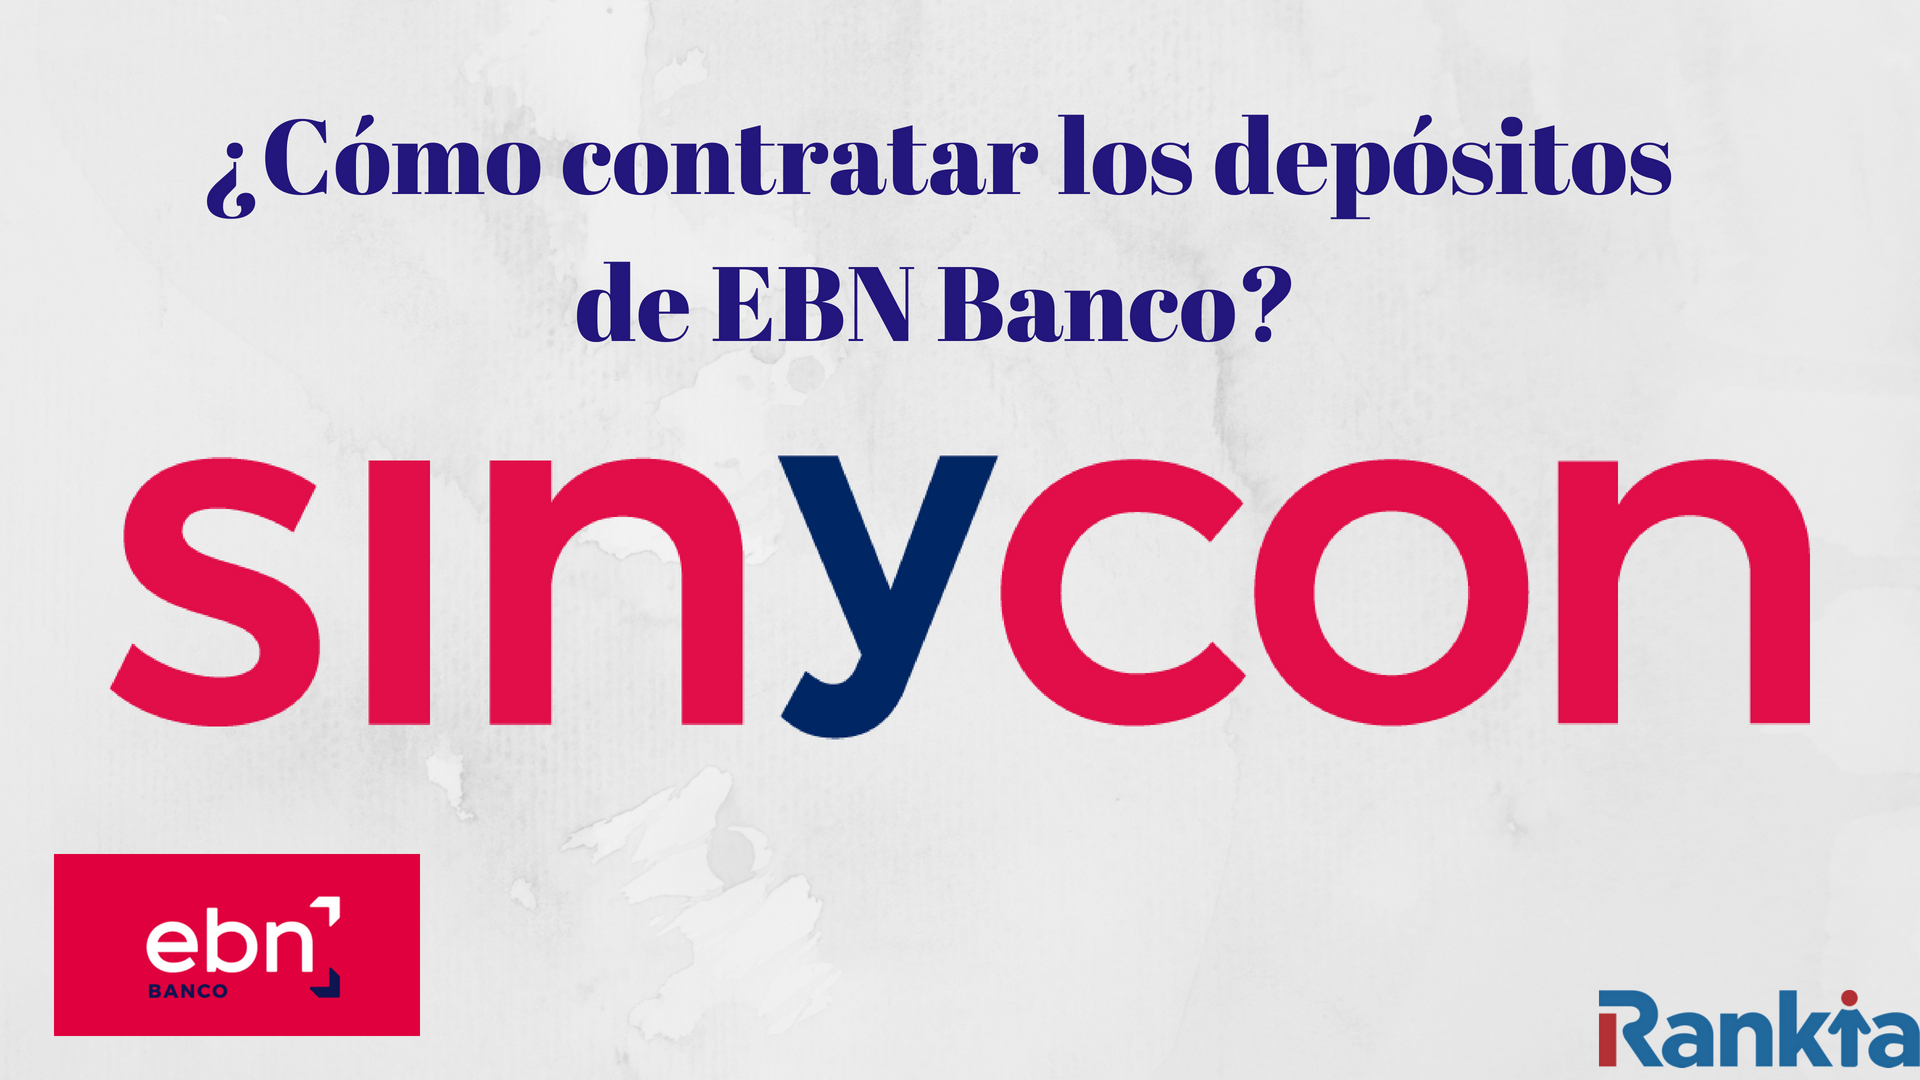 como contratar depositos sinycon